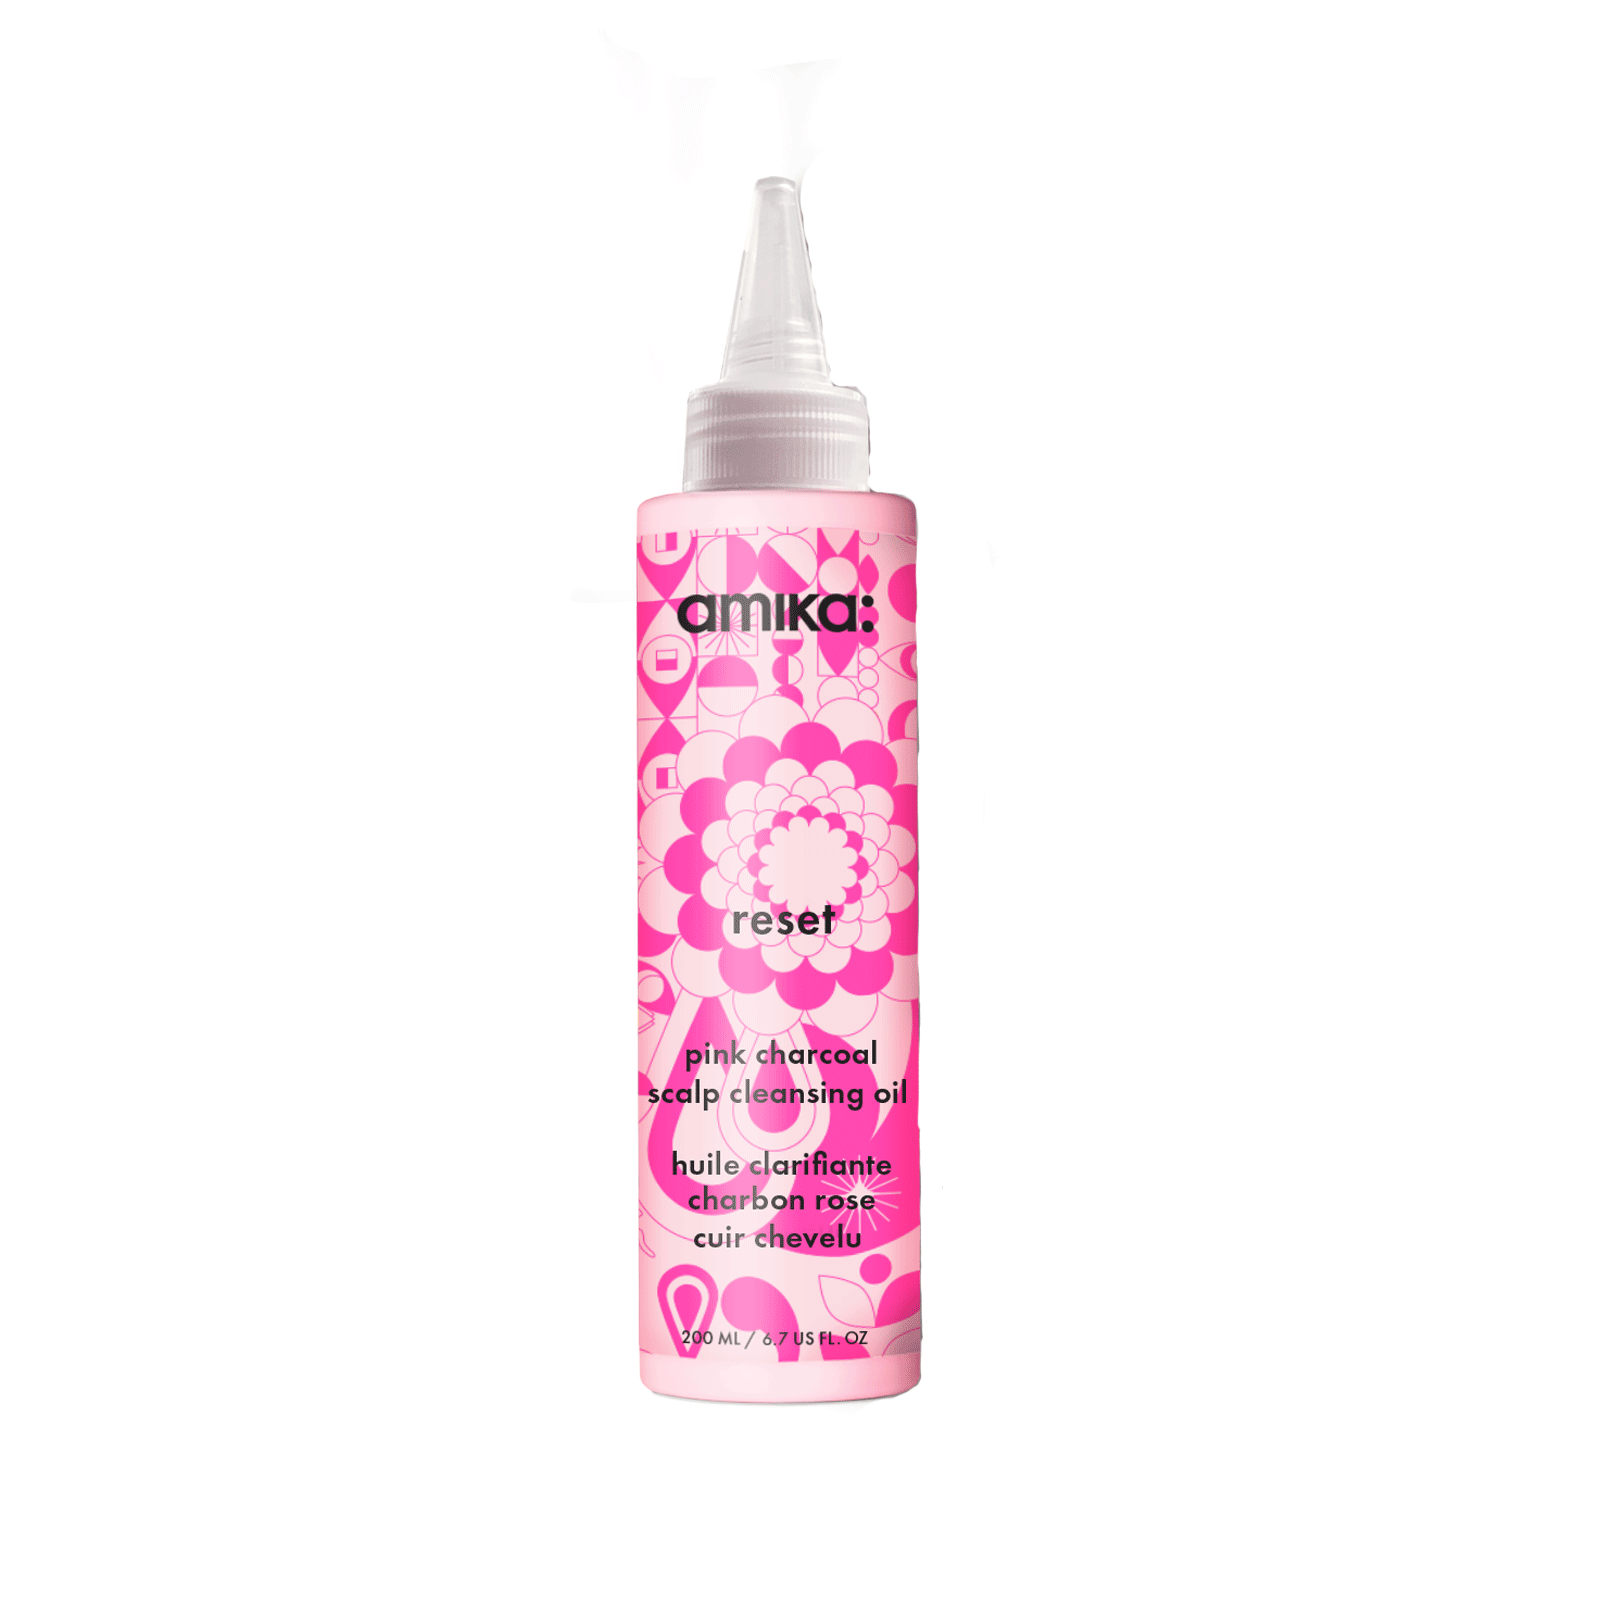 Reset - Pink Charcoal Pre-Cleansing Oil